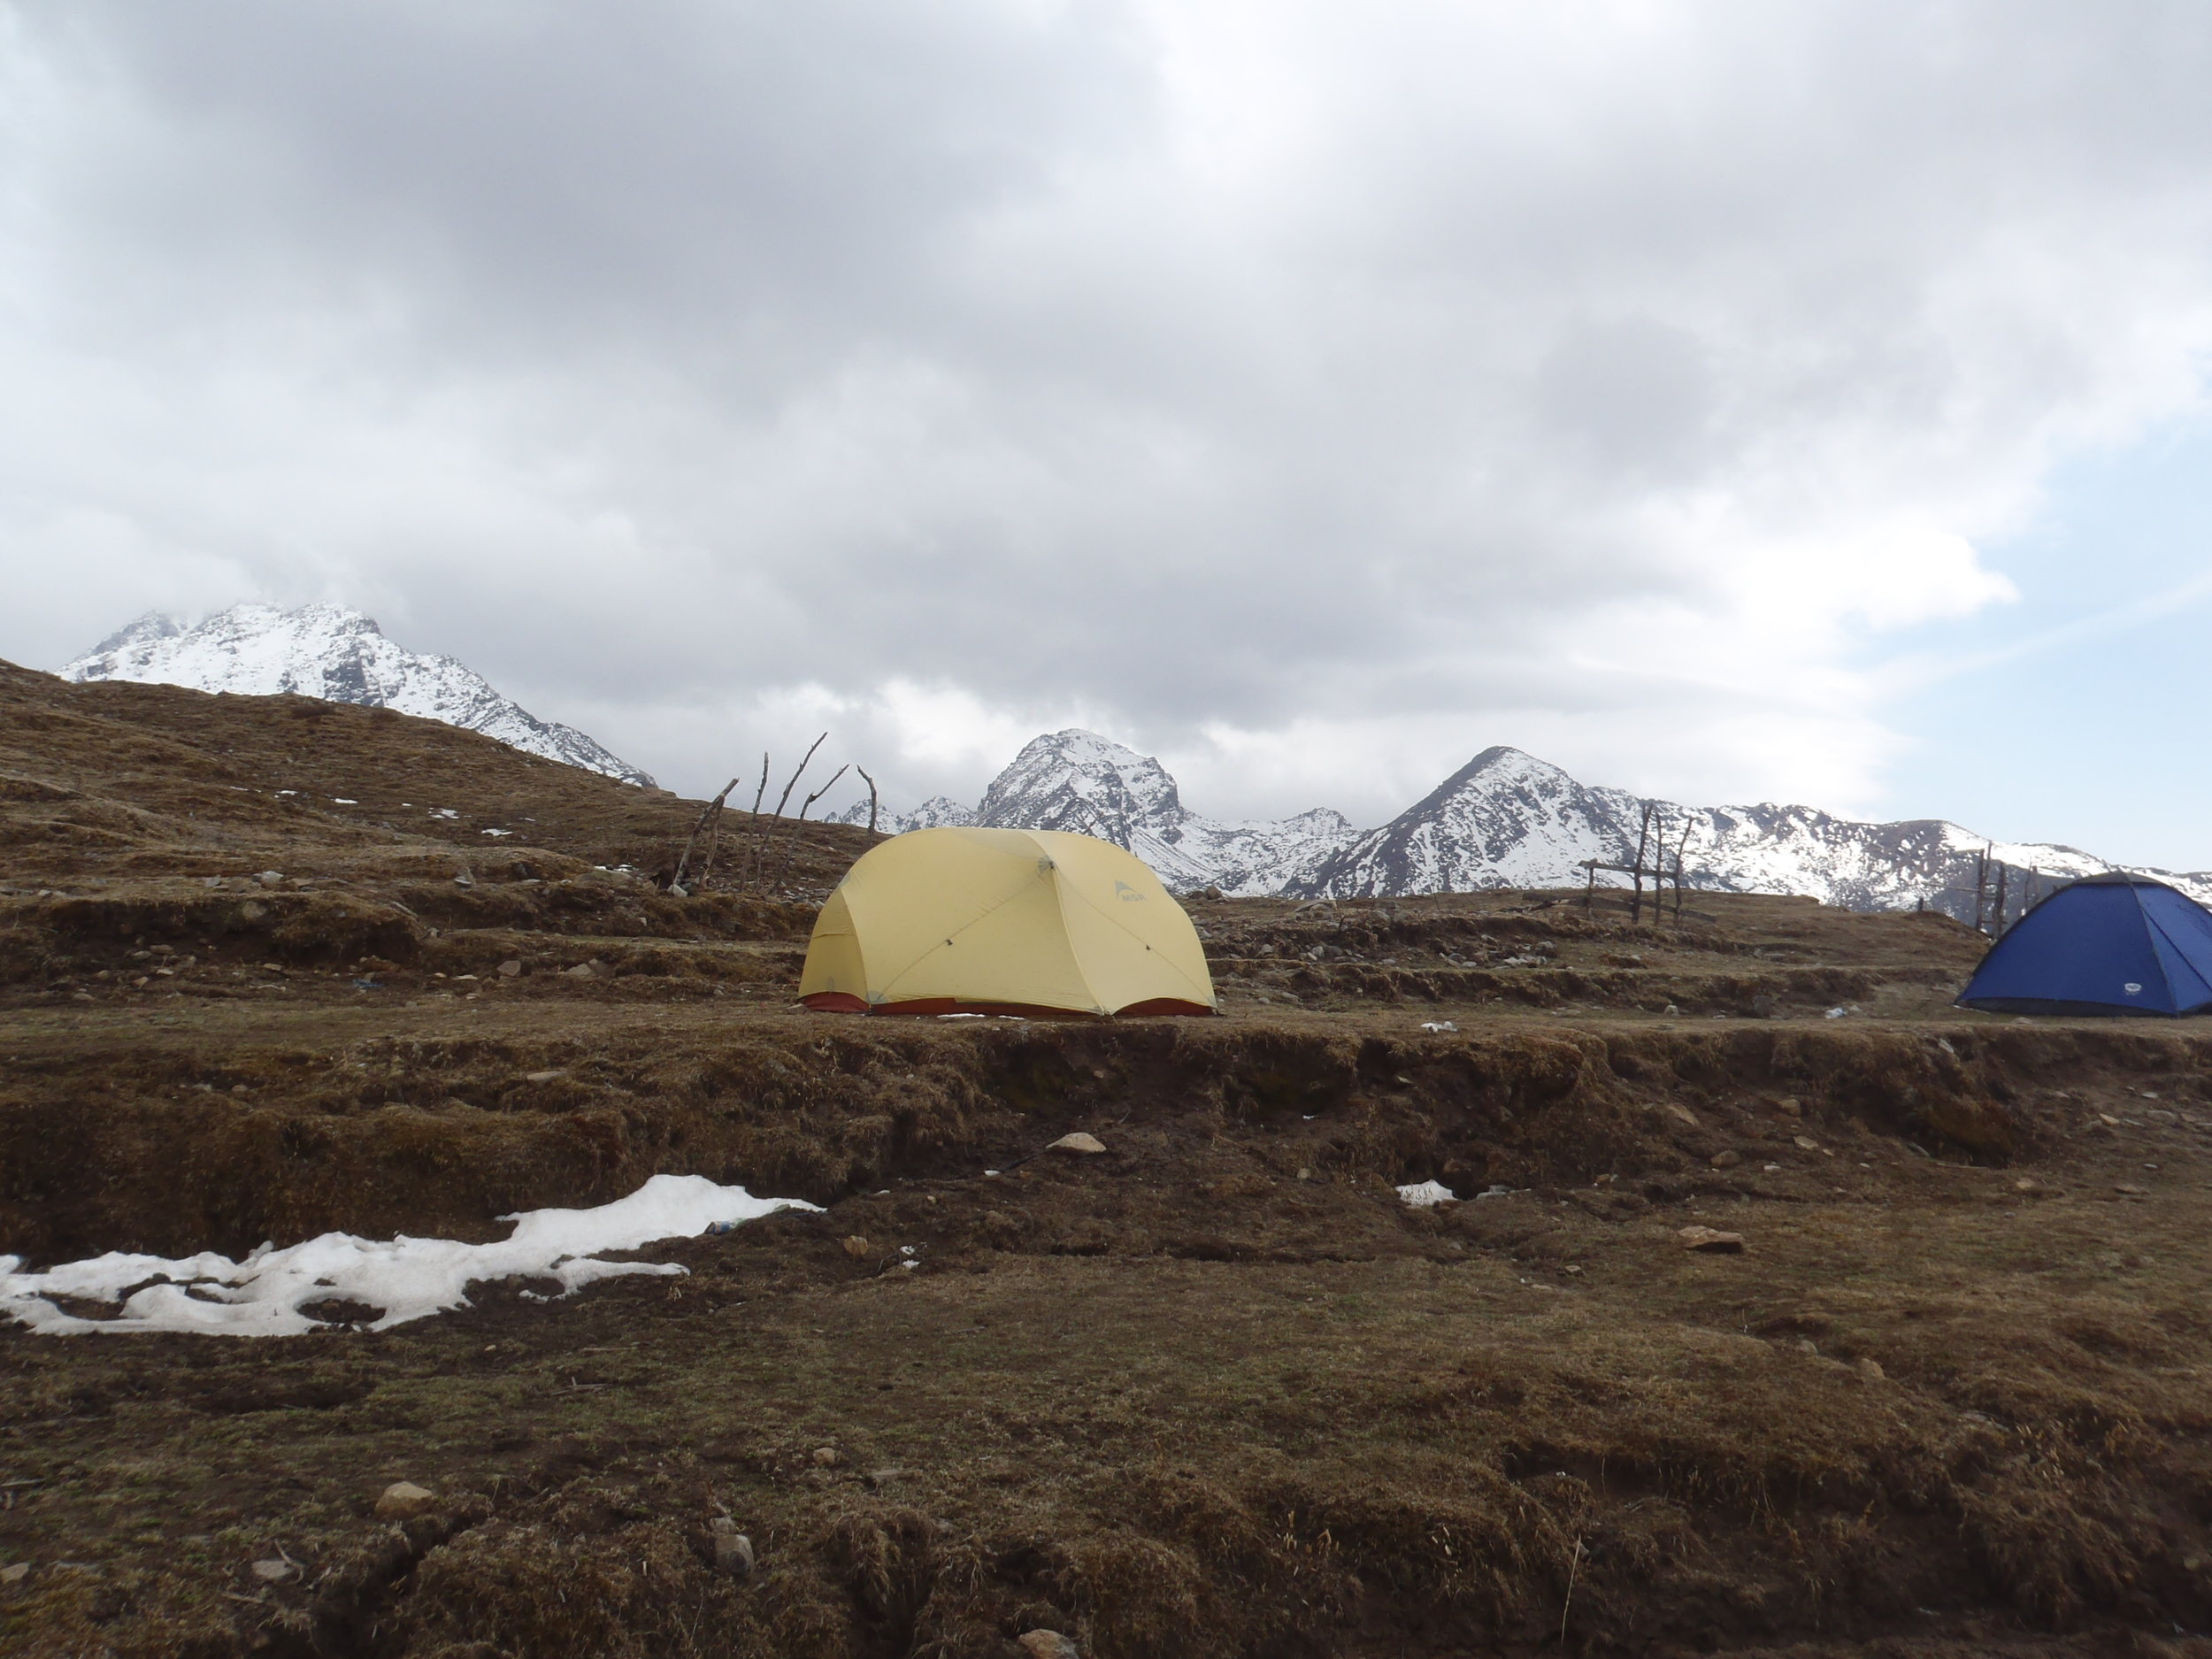 Camping in the Himalayas. Does it get any better?